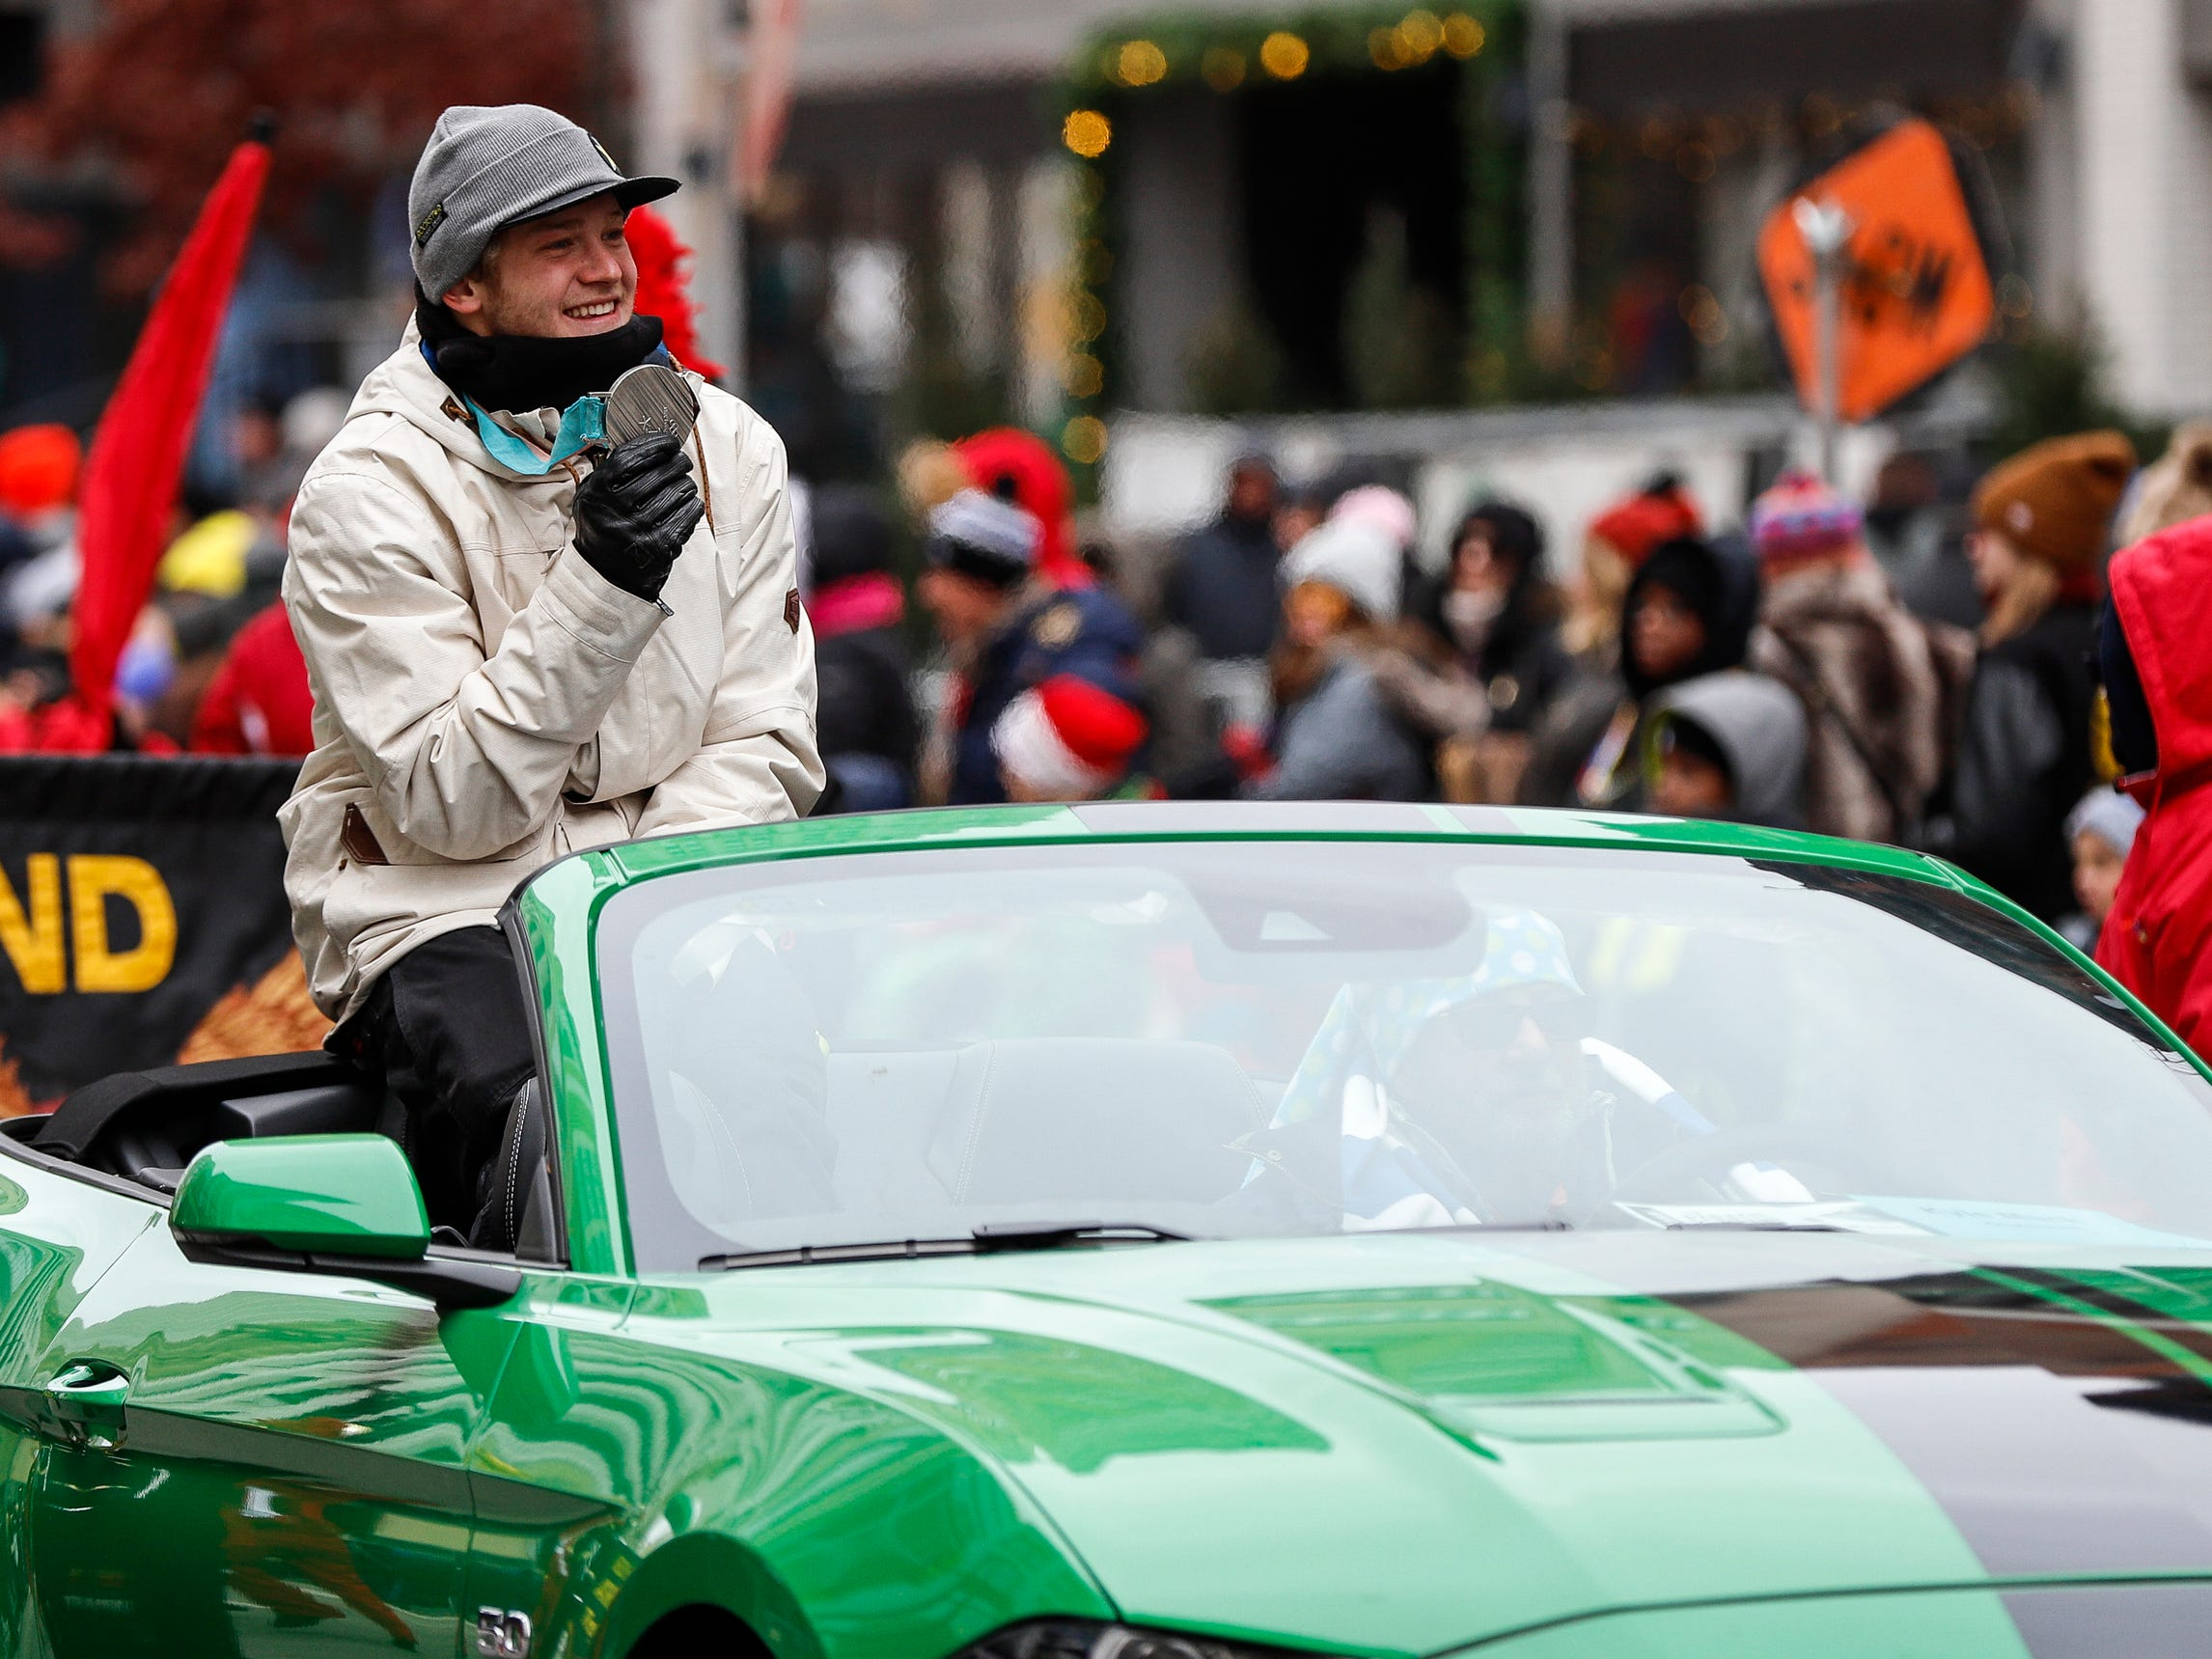 Olympic silver medalist Kyle Mack shows off his medal during the 92nd America's Thanksgiving Day Parade in Detroit, Thursday, Nov. 22, 2018.